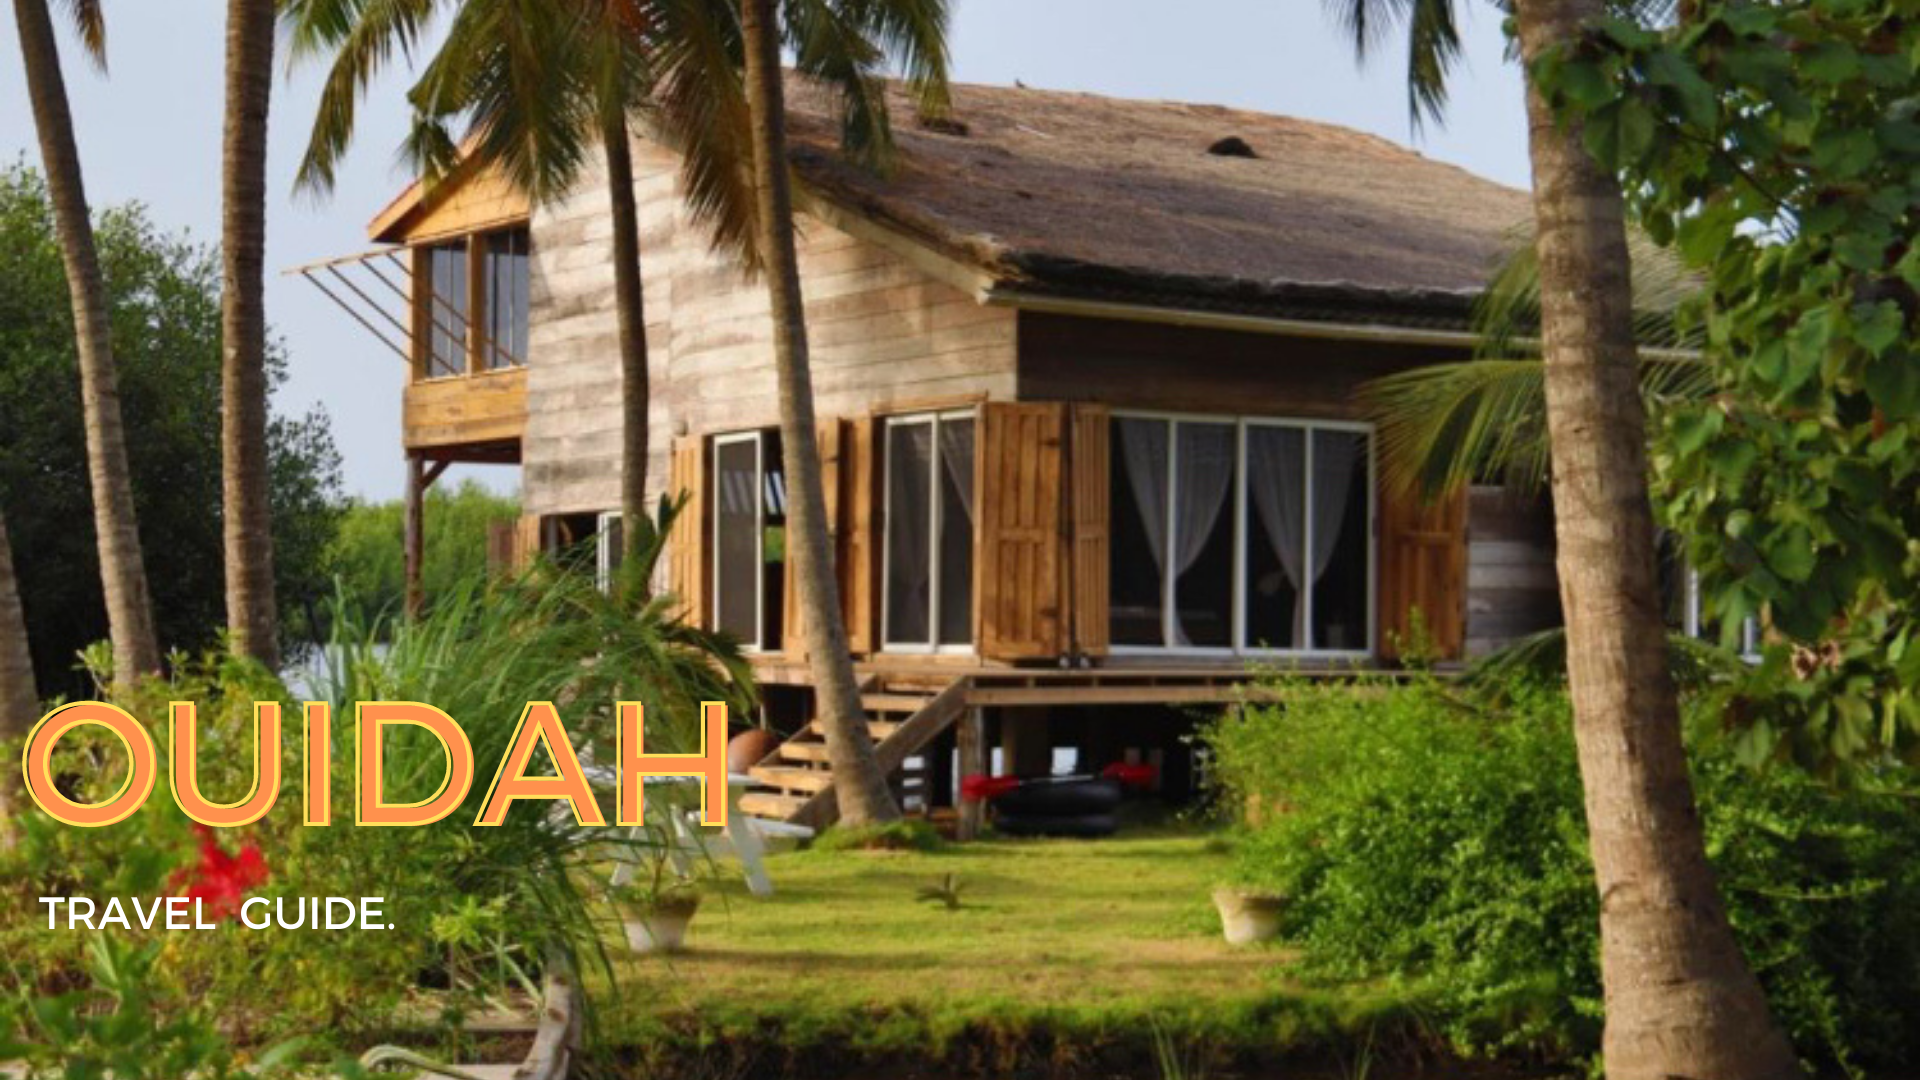 Copy of The Ouidah Travel Guide